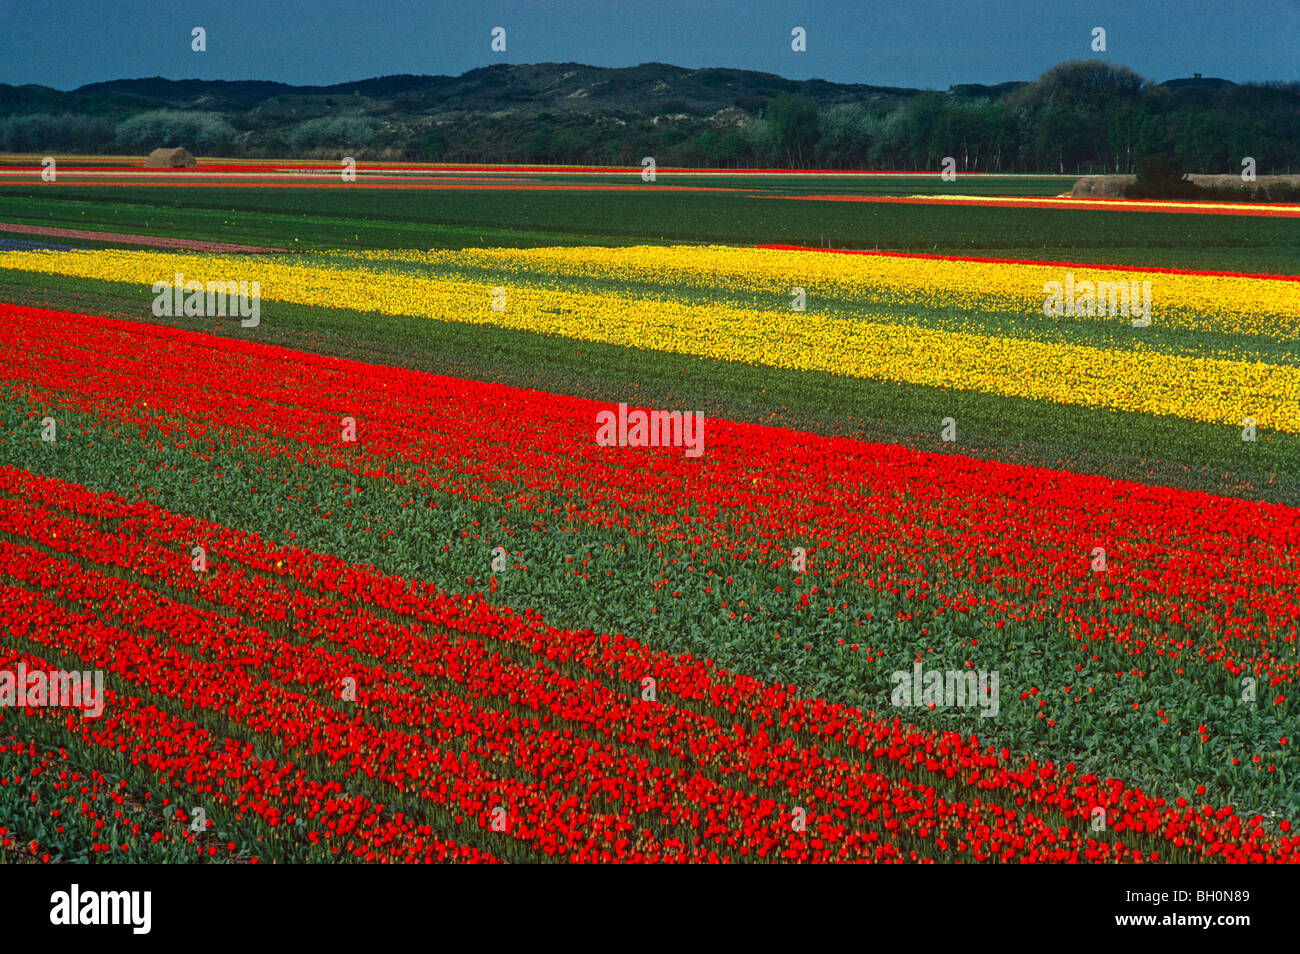 The tulip fields of Holland form amazing carpets in multi-color seen from the air. Stock Photo